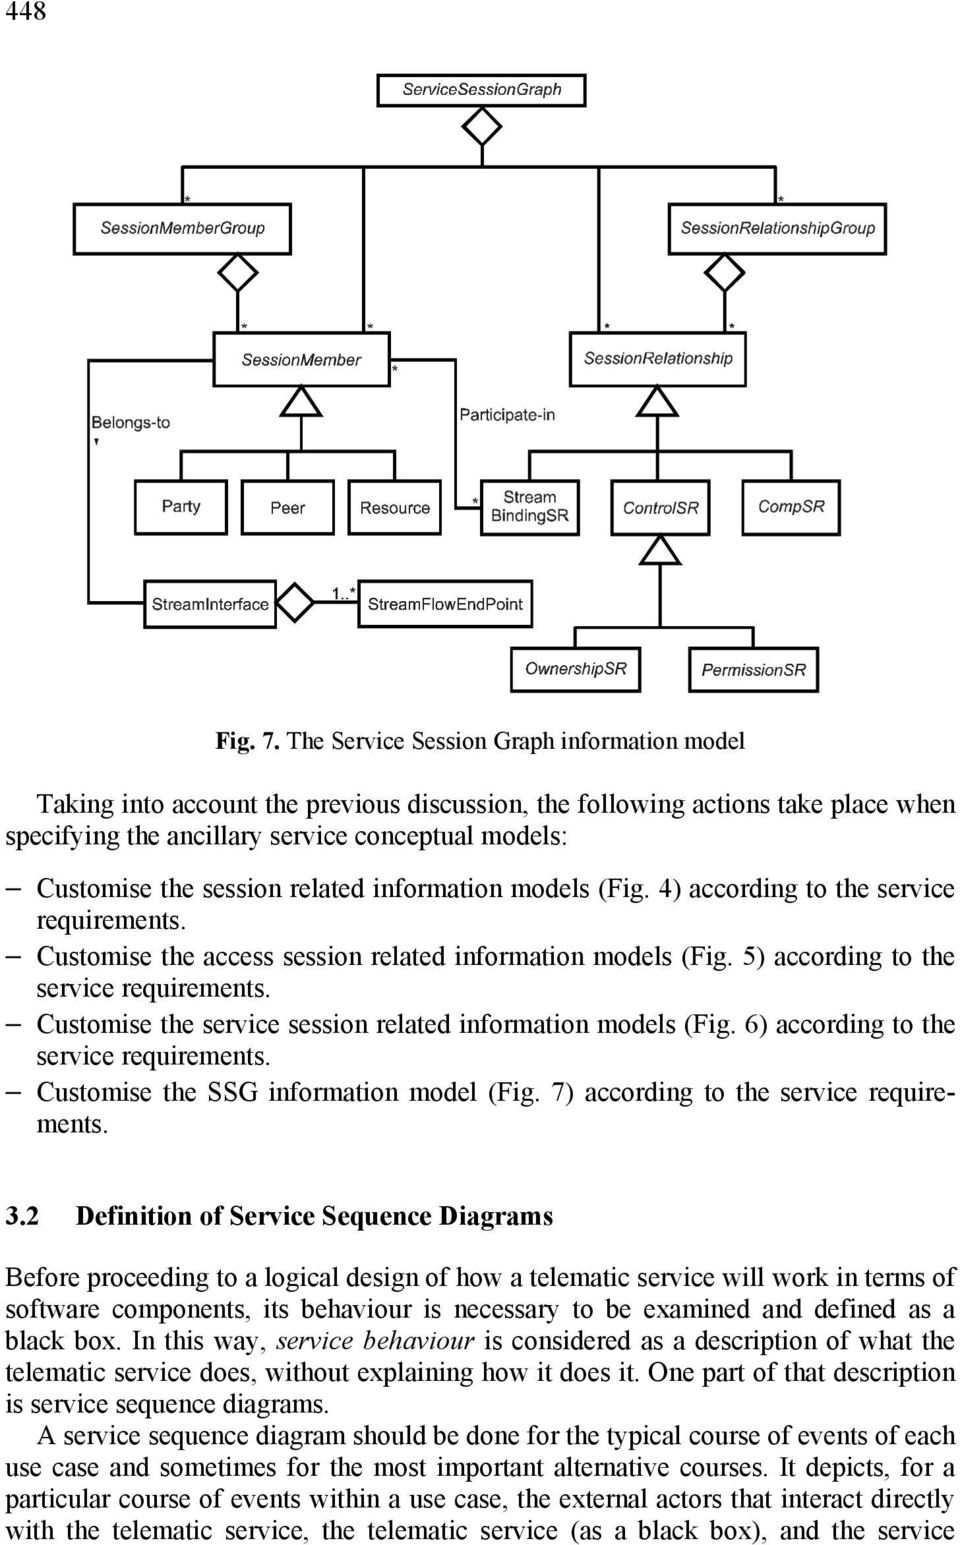 session related information models (Fig. 4) according to the service requirements. Customise the access session related information models (Fig. 5) according to the service requirements.